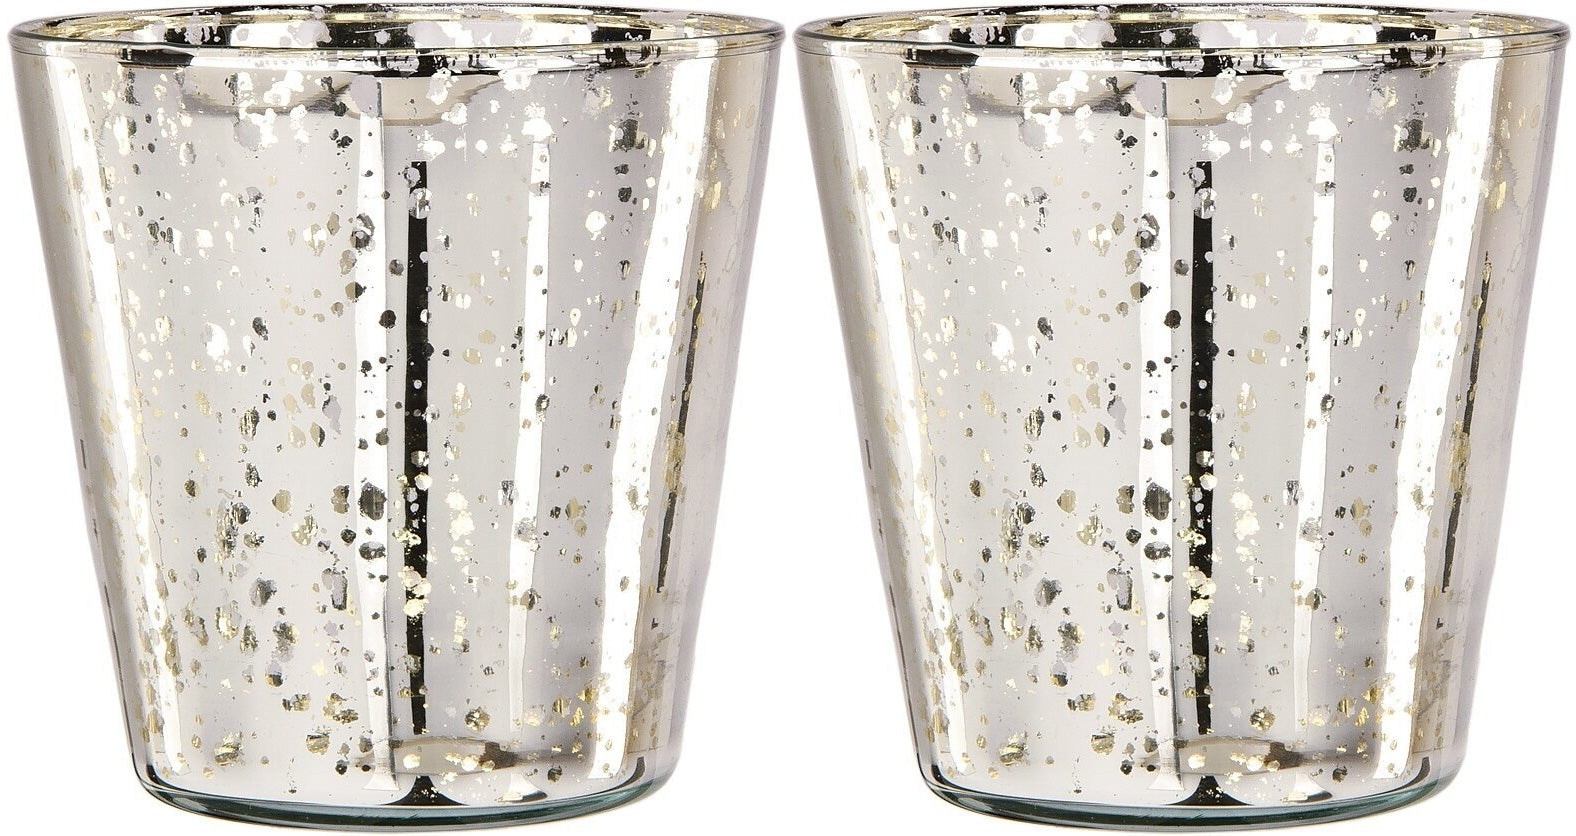 BLOWOUT 2 PACK | Vintage Mercury Glass Candle Holder (4-Inch, Jenna Design Cup, Silver) - Decorative Candle Holder - For Home Decor, Parties and Wedding Decorations